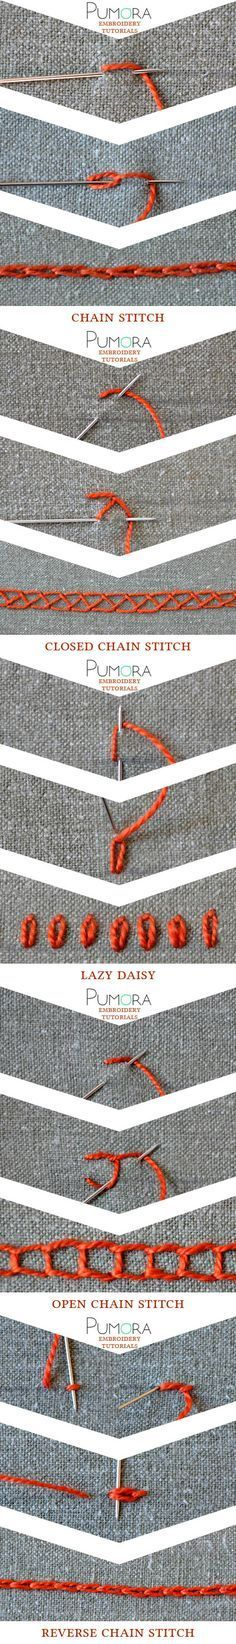 embroidery tutorials: chain stitch with variations broderie, ricamo, sticken, bordado                                                                                                                                                                                 Más